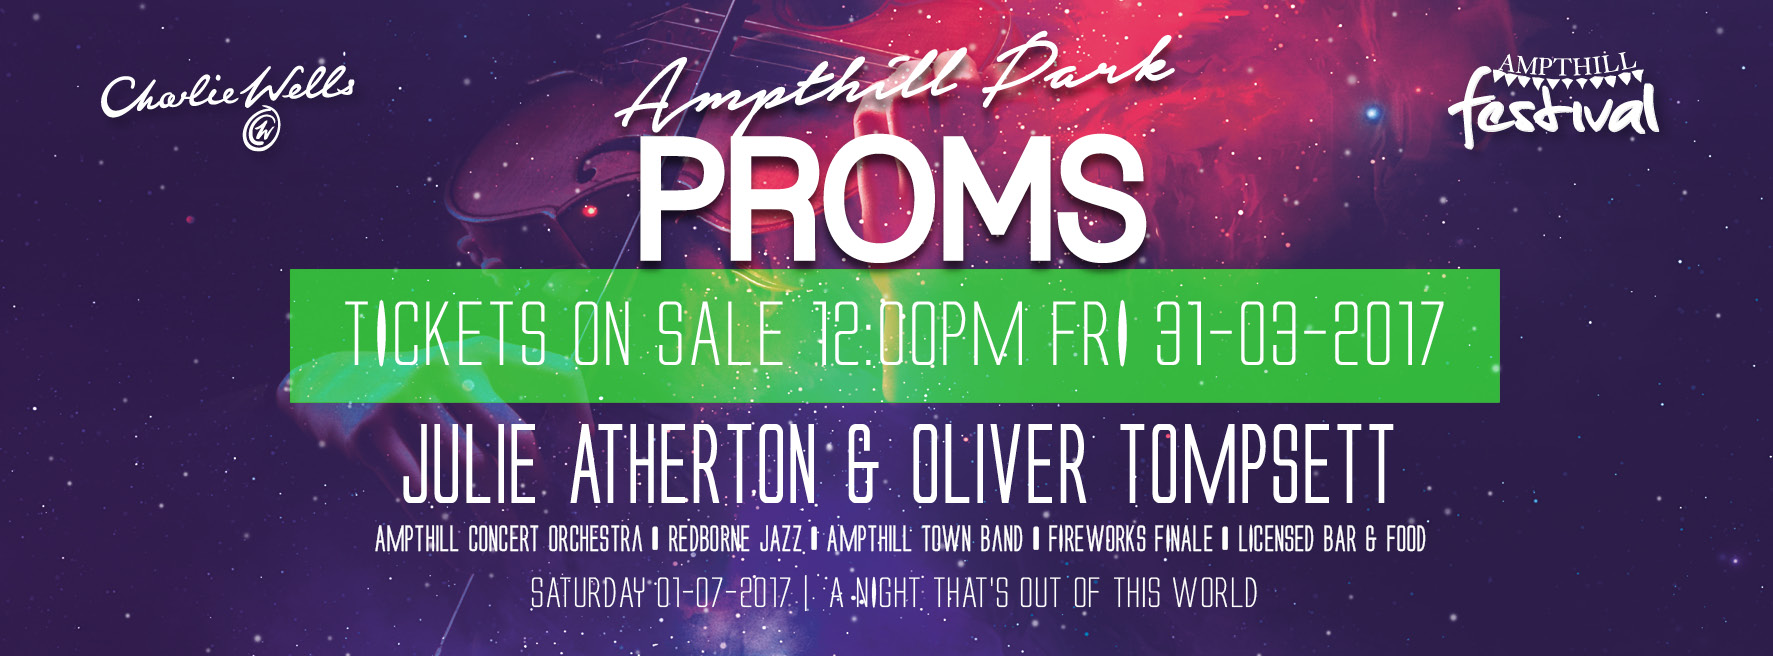 Proms Ticket Banner